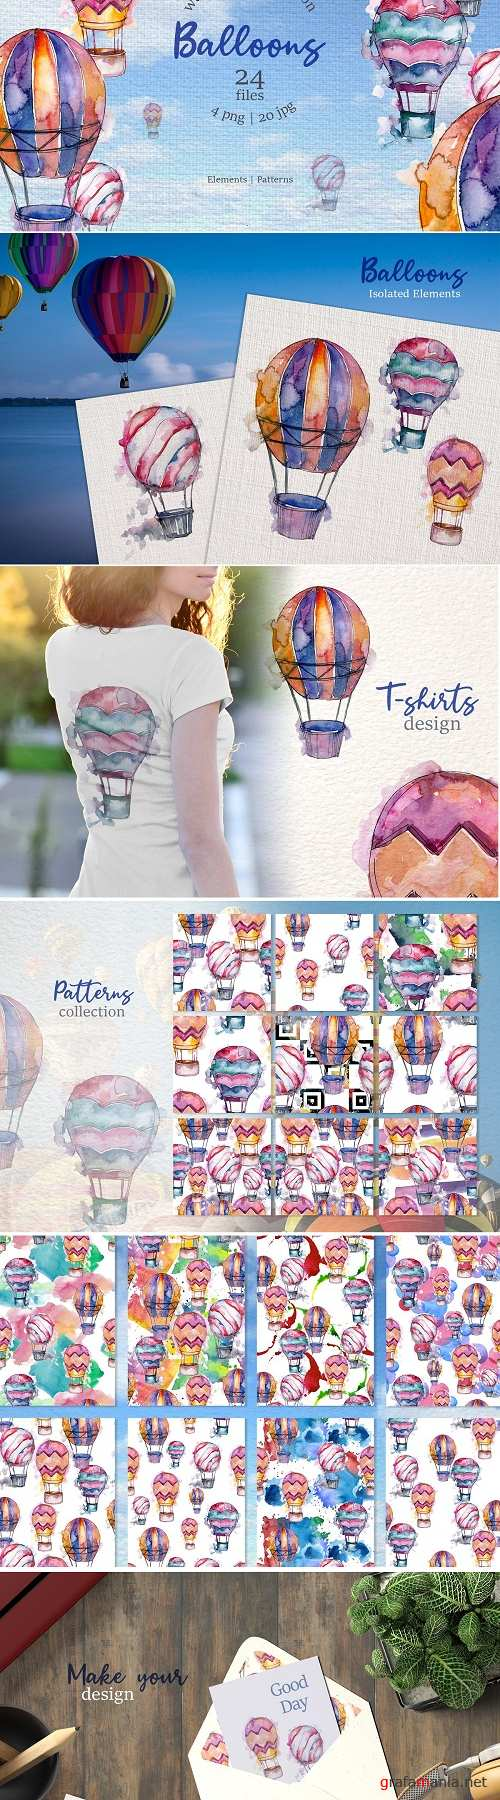 Balloons Watercolor blue png - 3354117